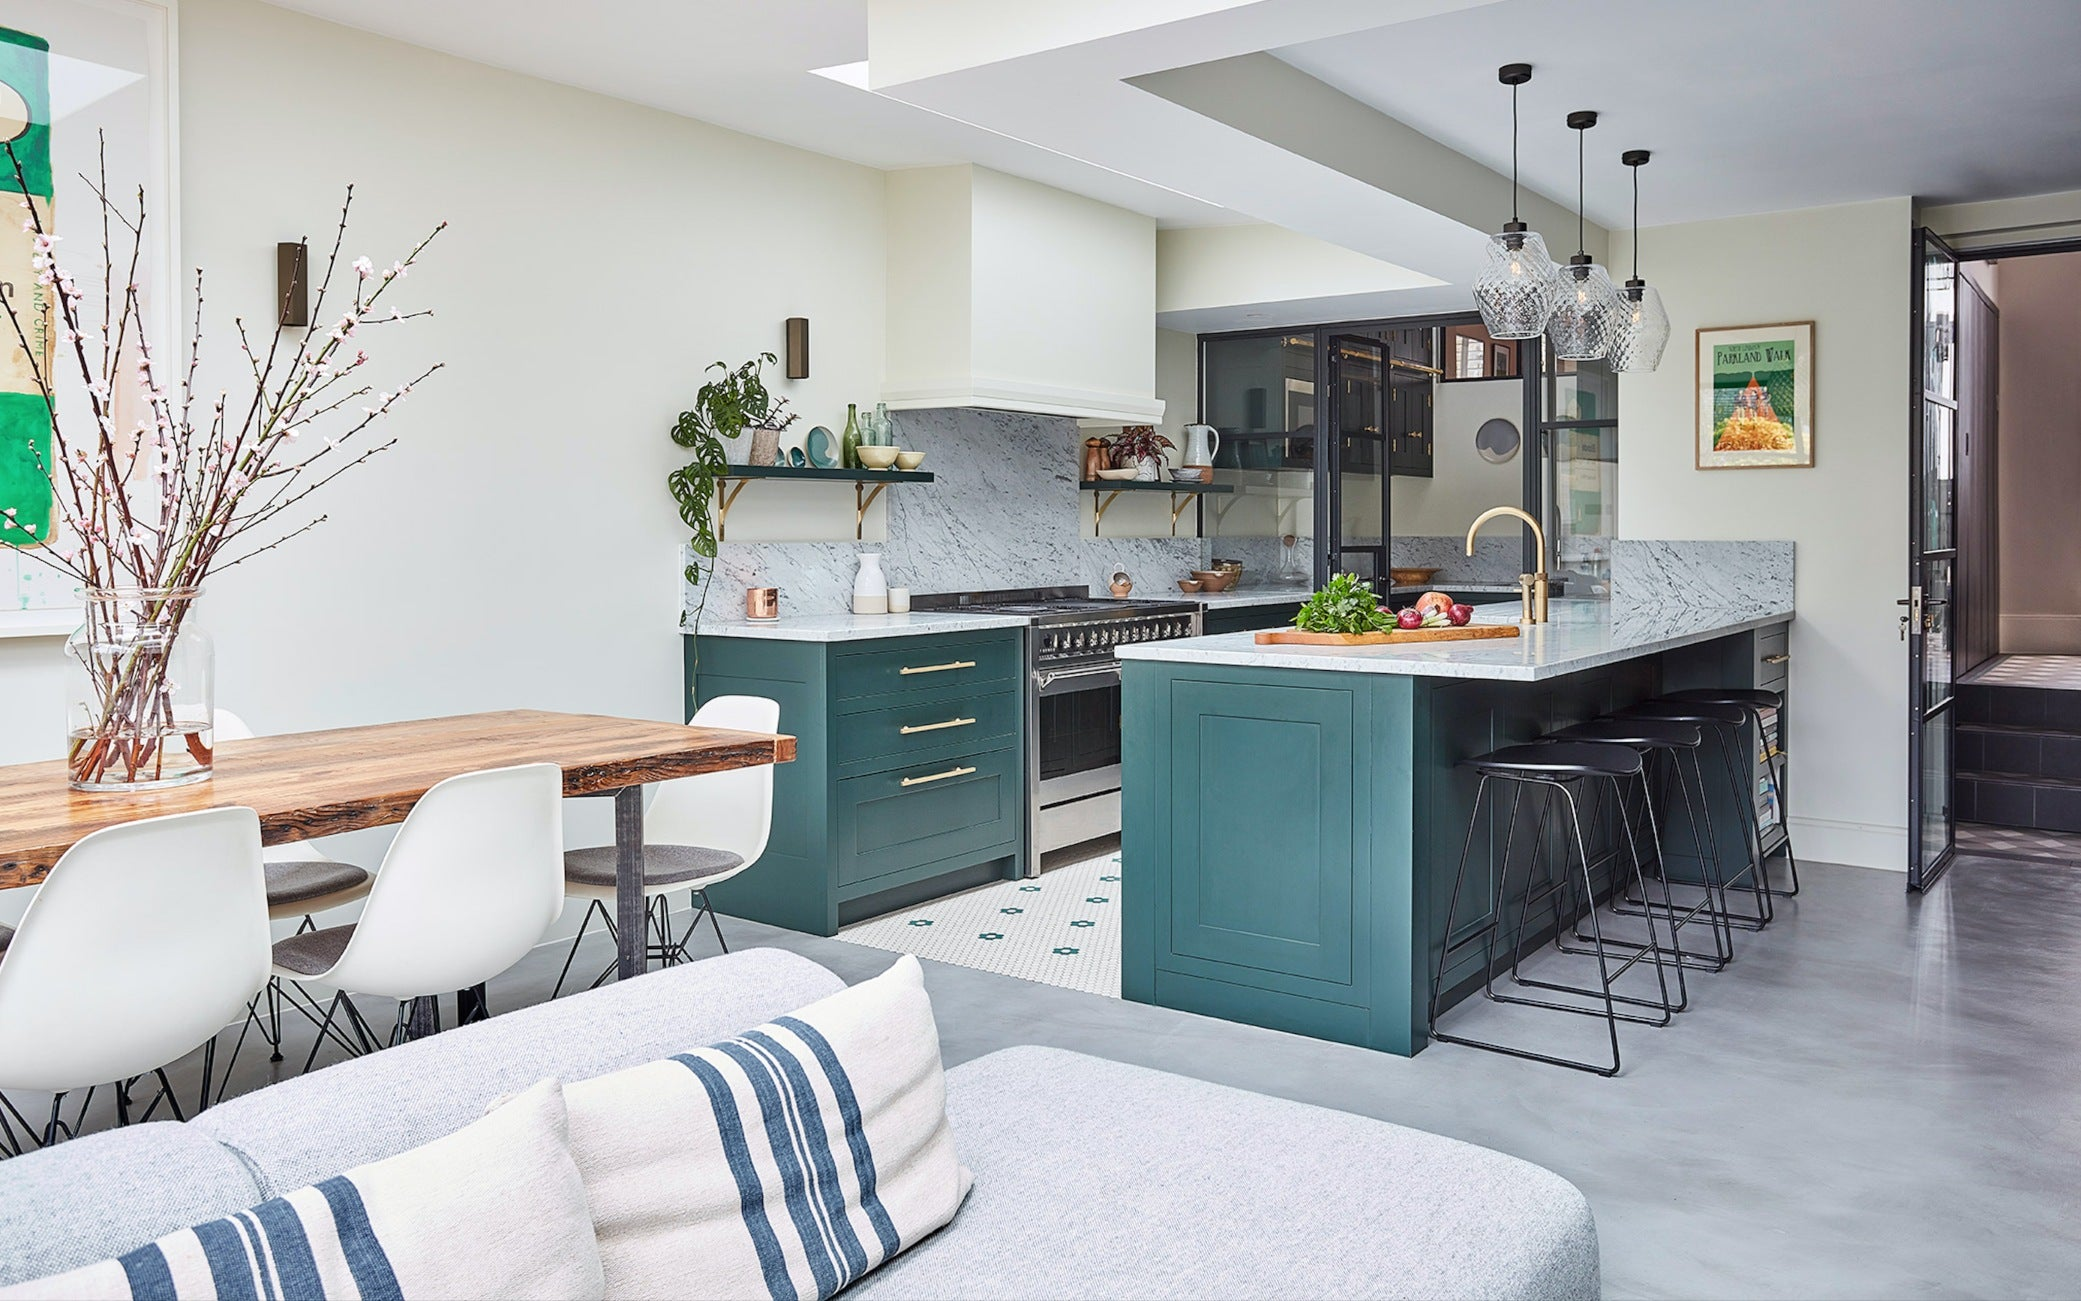 High Gloss Kitchens - The Latest Kitchen Trends in 2019 - LuxDeco.com